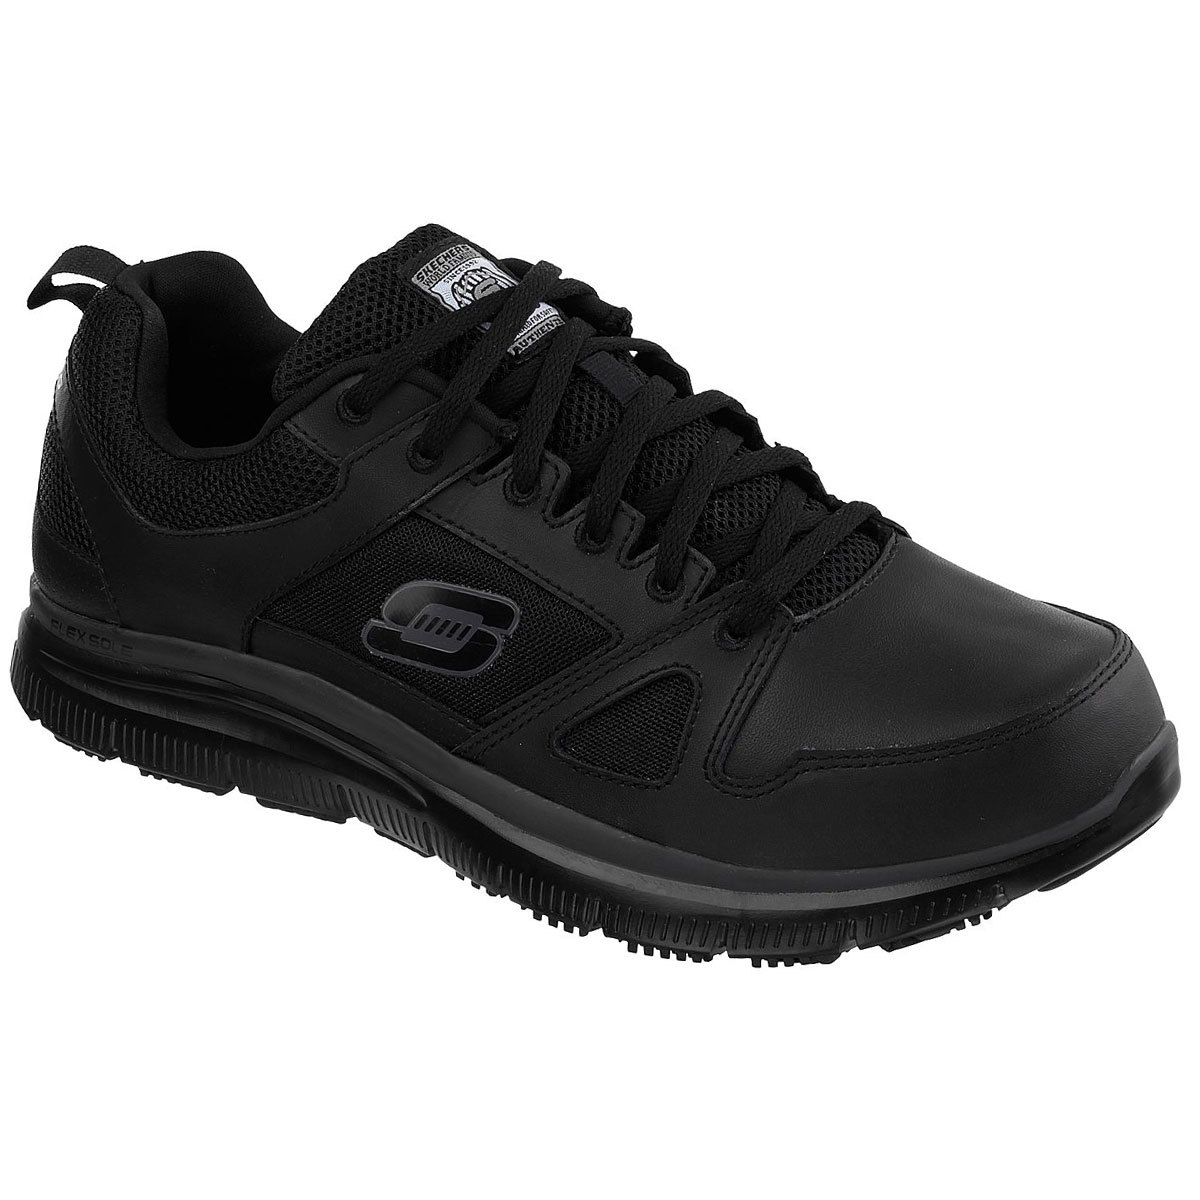 Skechers Men's Work Relaxed Fit: Flex Advantage Sr Work Shoes - Black, 8.5